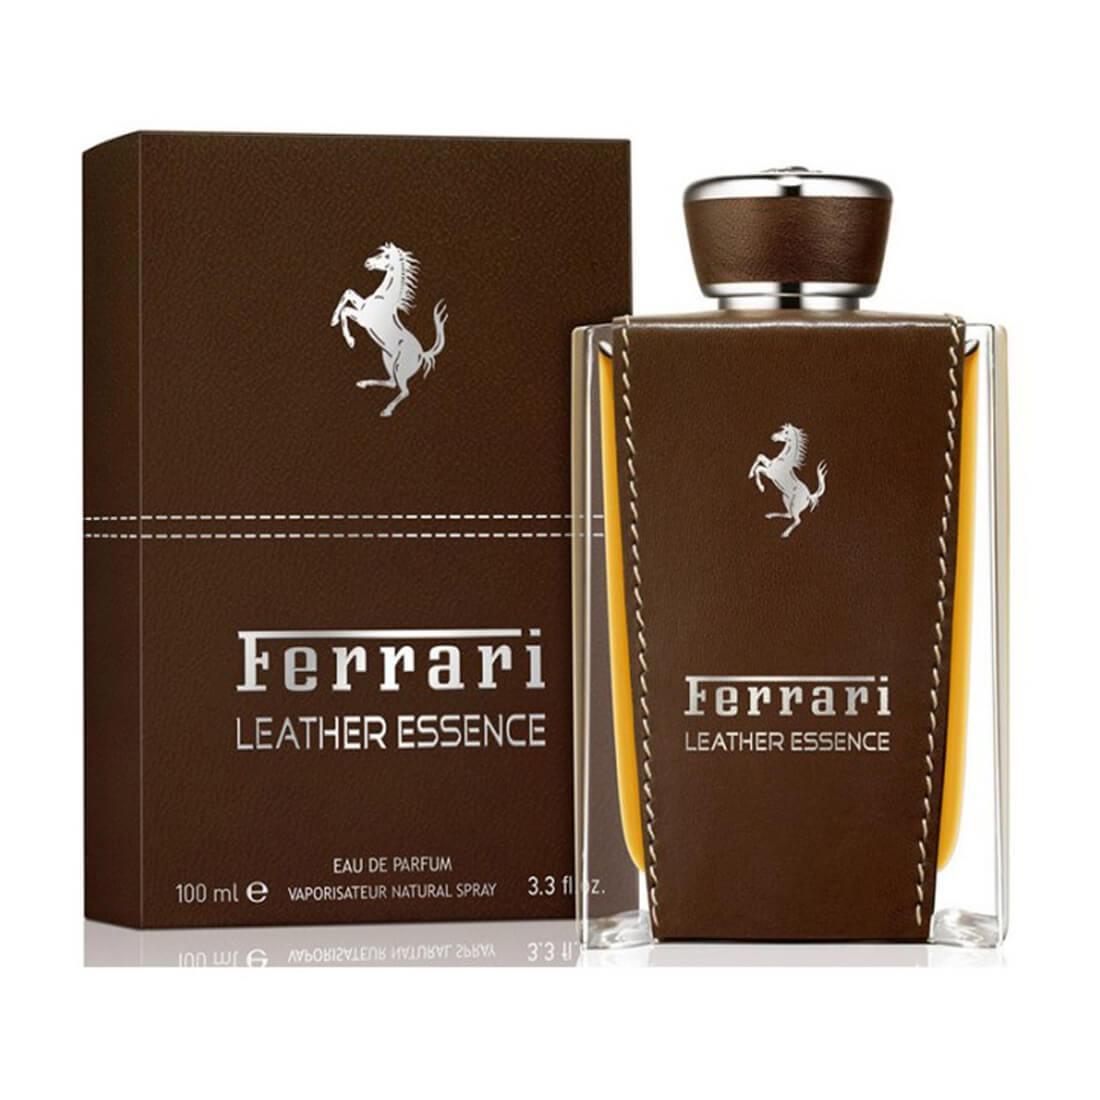 Ferrari Leather Essence Perfume For Men - 100ml